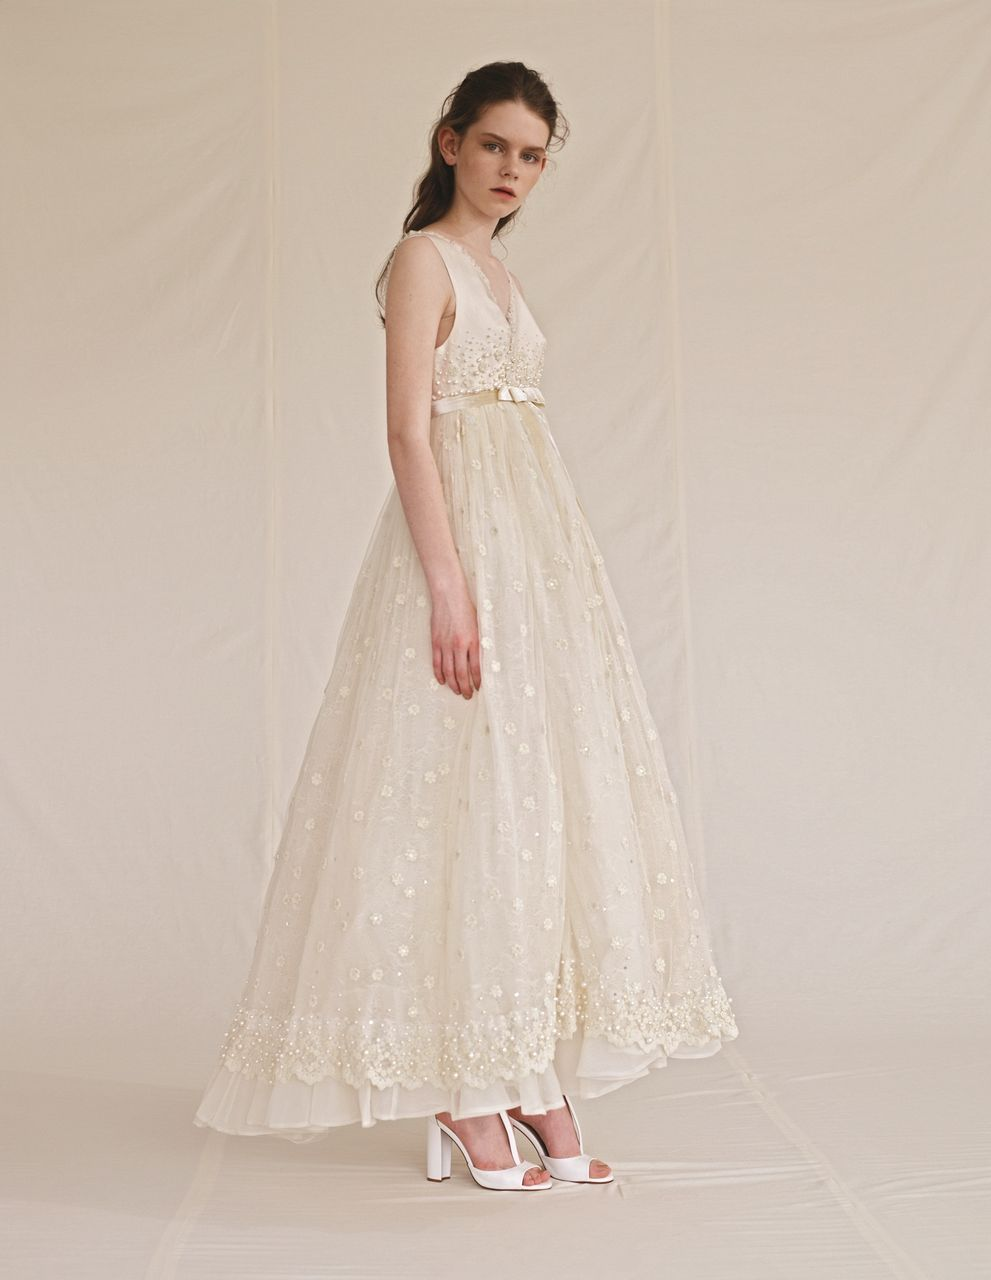 aacero mariage dress 画像